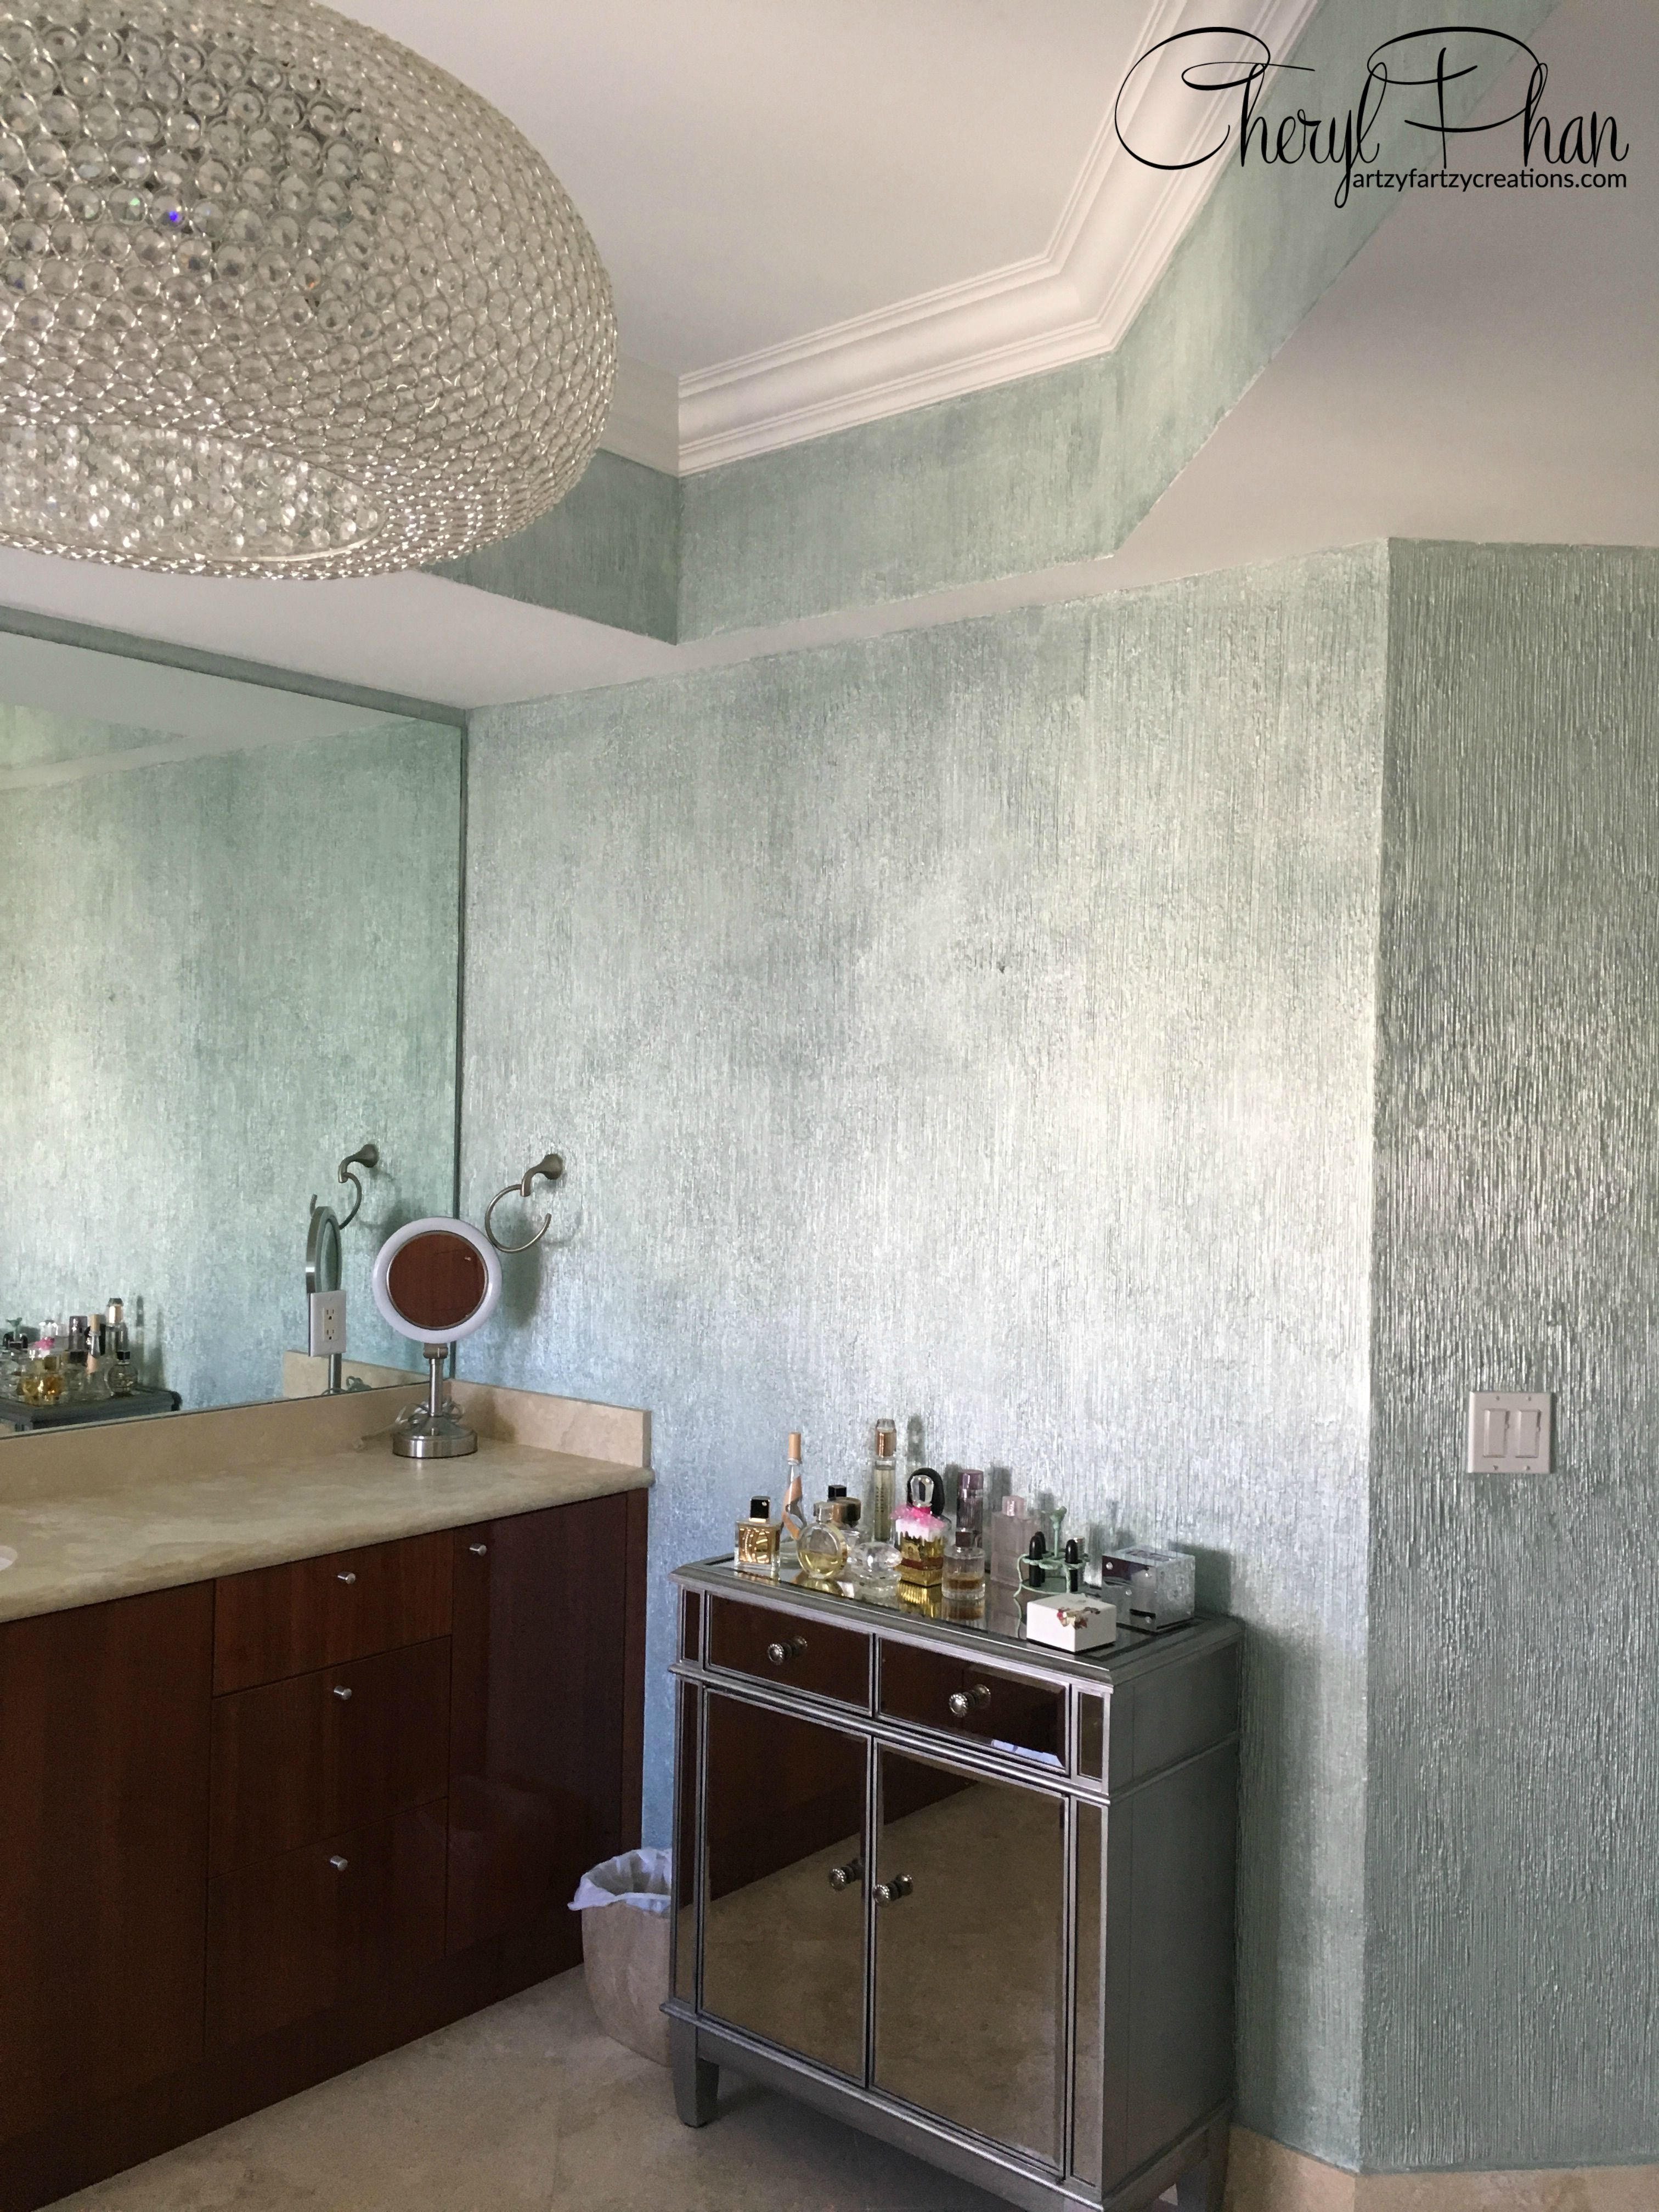 How to paint a textured metallic wall finish